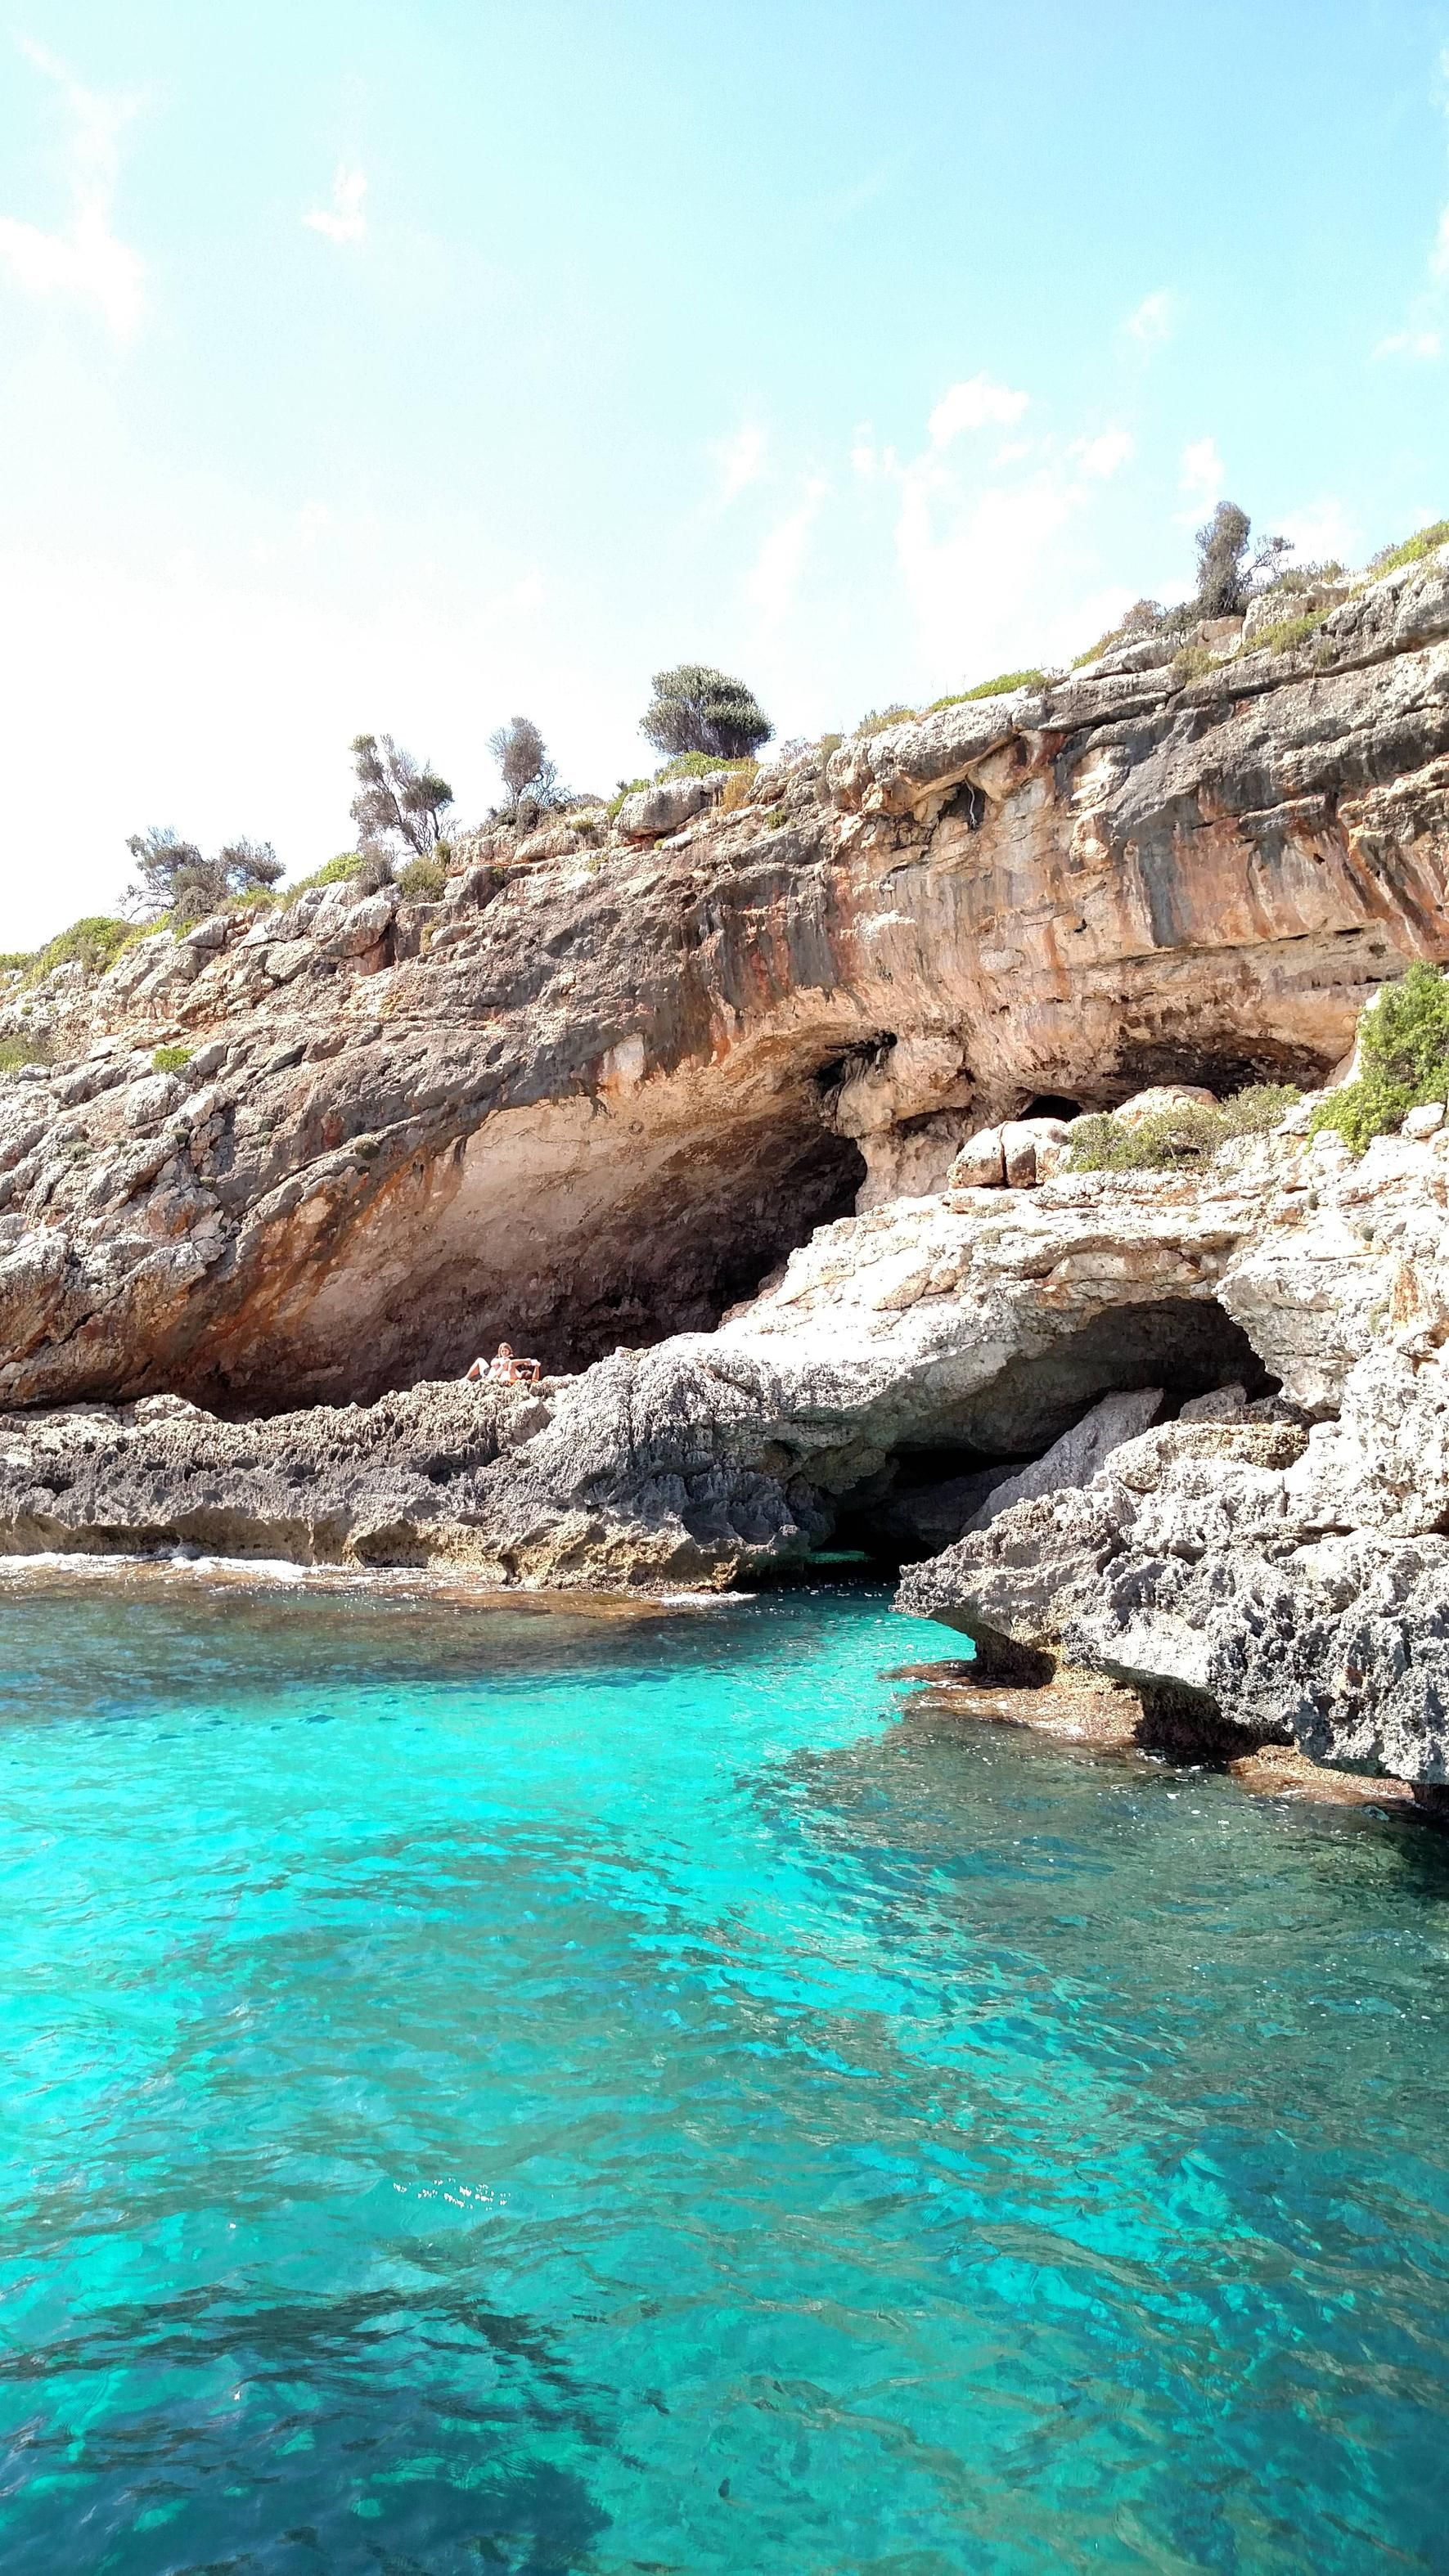 Mallorca Spain Mobile wallpapers in 2019 Background hd 1771x3149